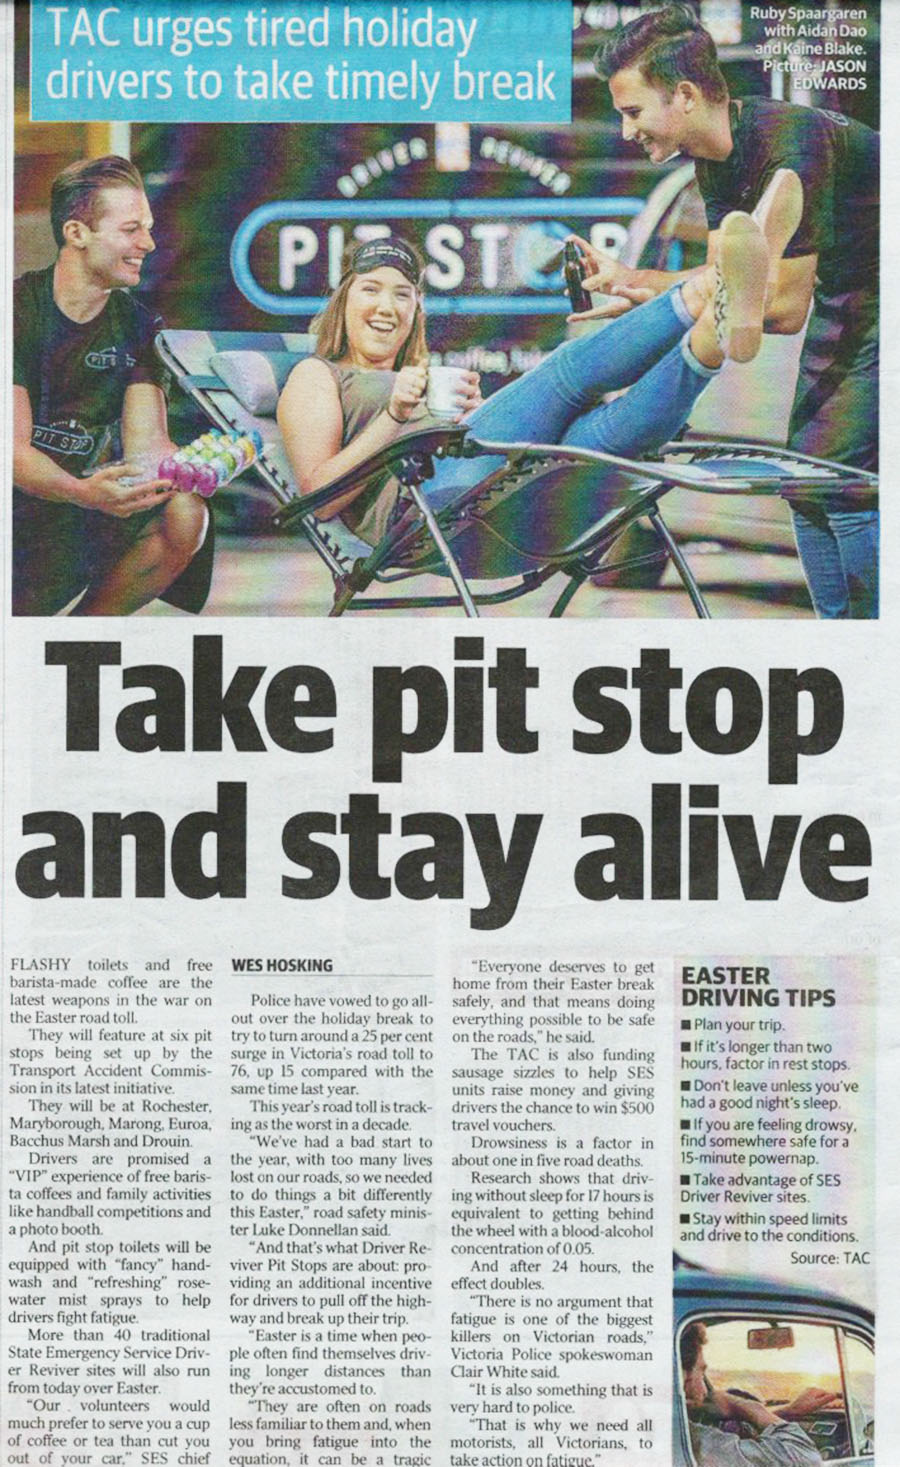 Page 8, Herald Sun, Thursday March 24, 2016